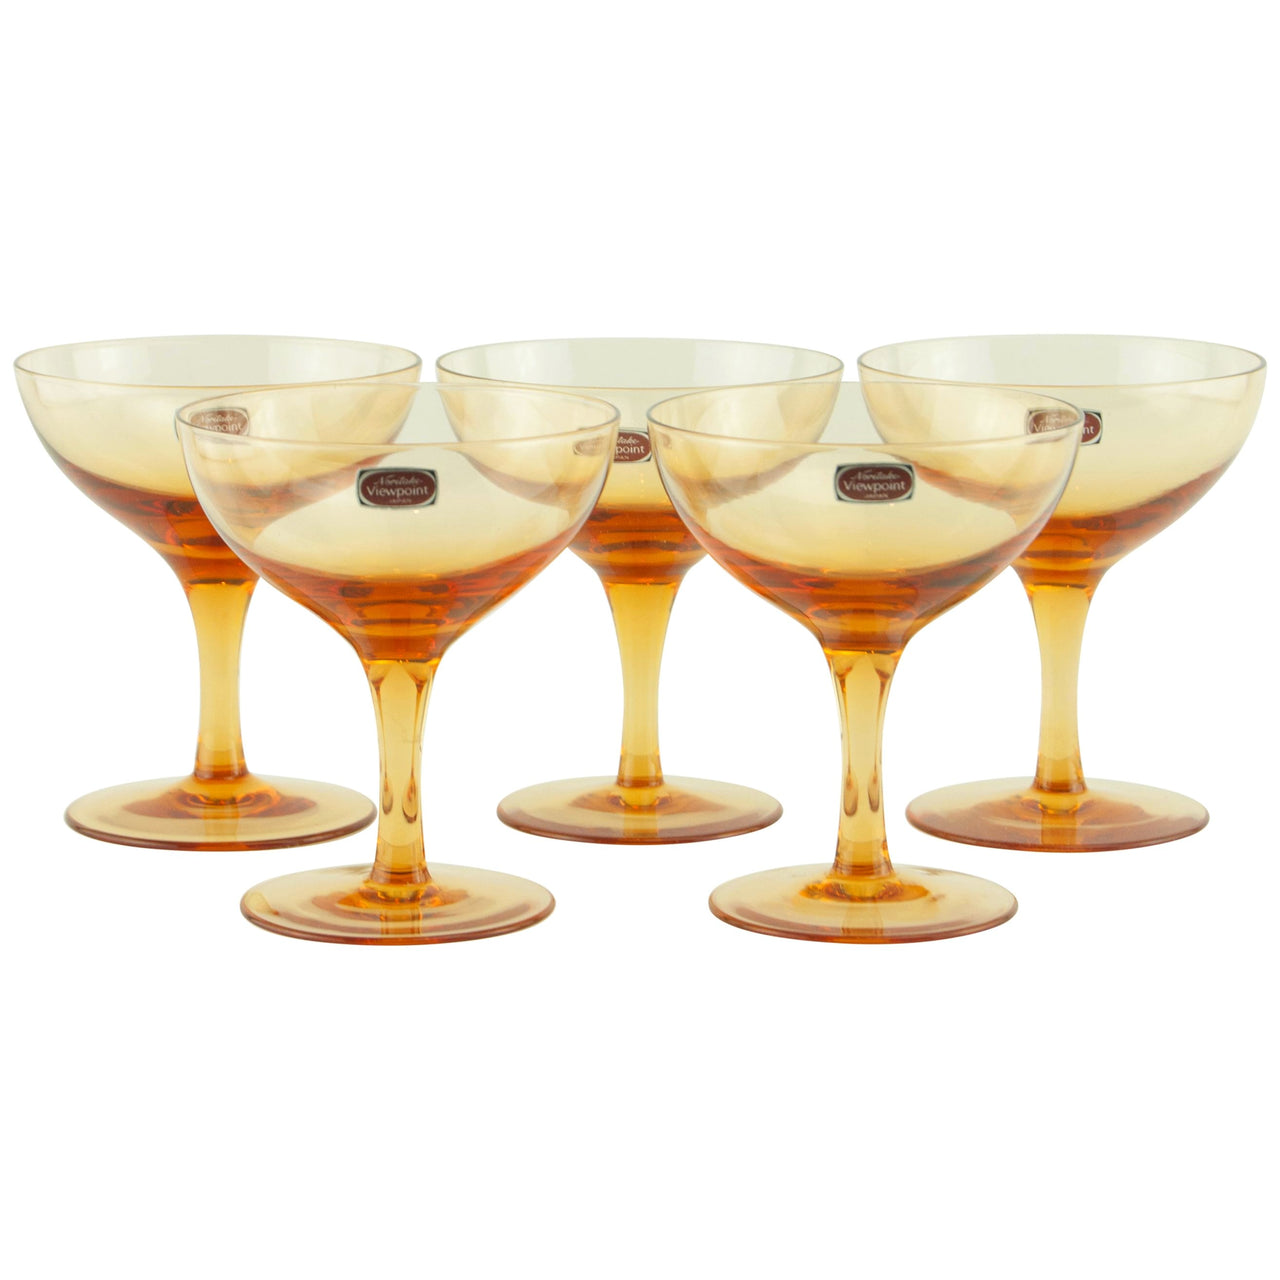 Noritake Amber Coupe Glasses | The Hour Shop Vintage